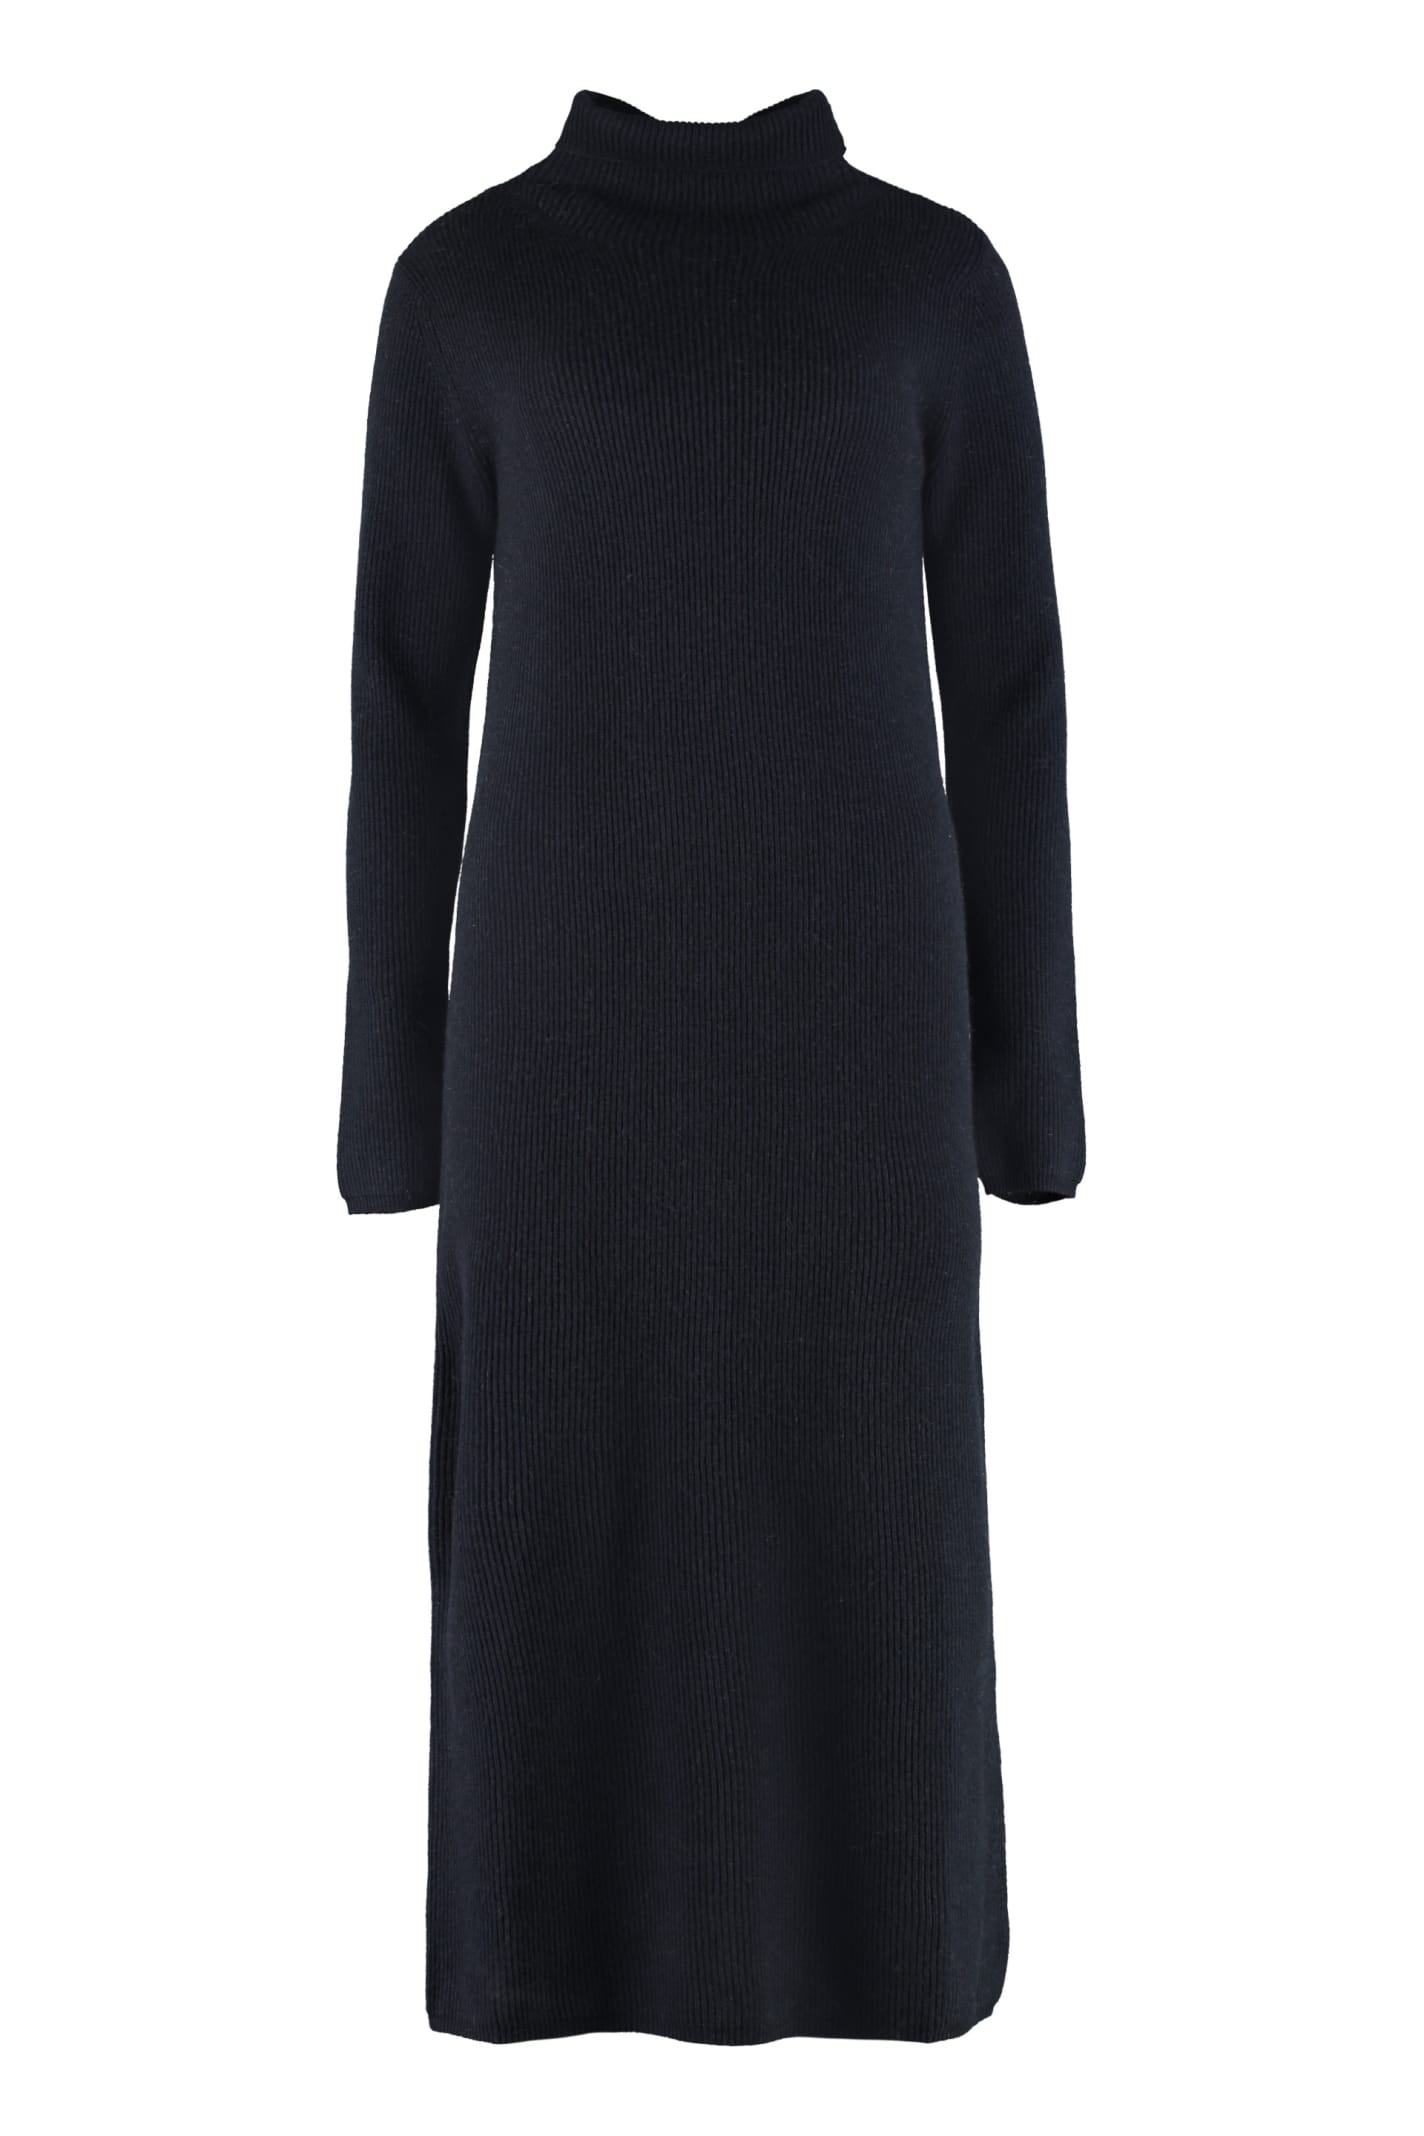 Max Mara Bernini Turtlenack Sweater-dress